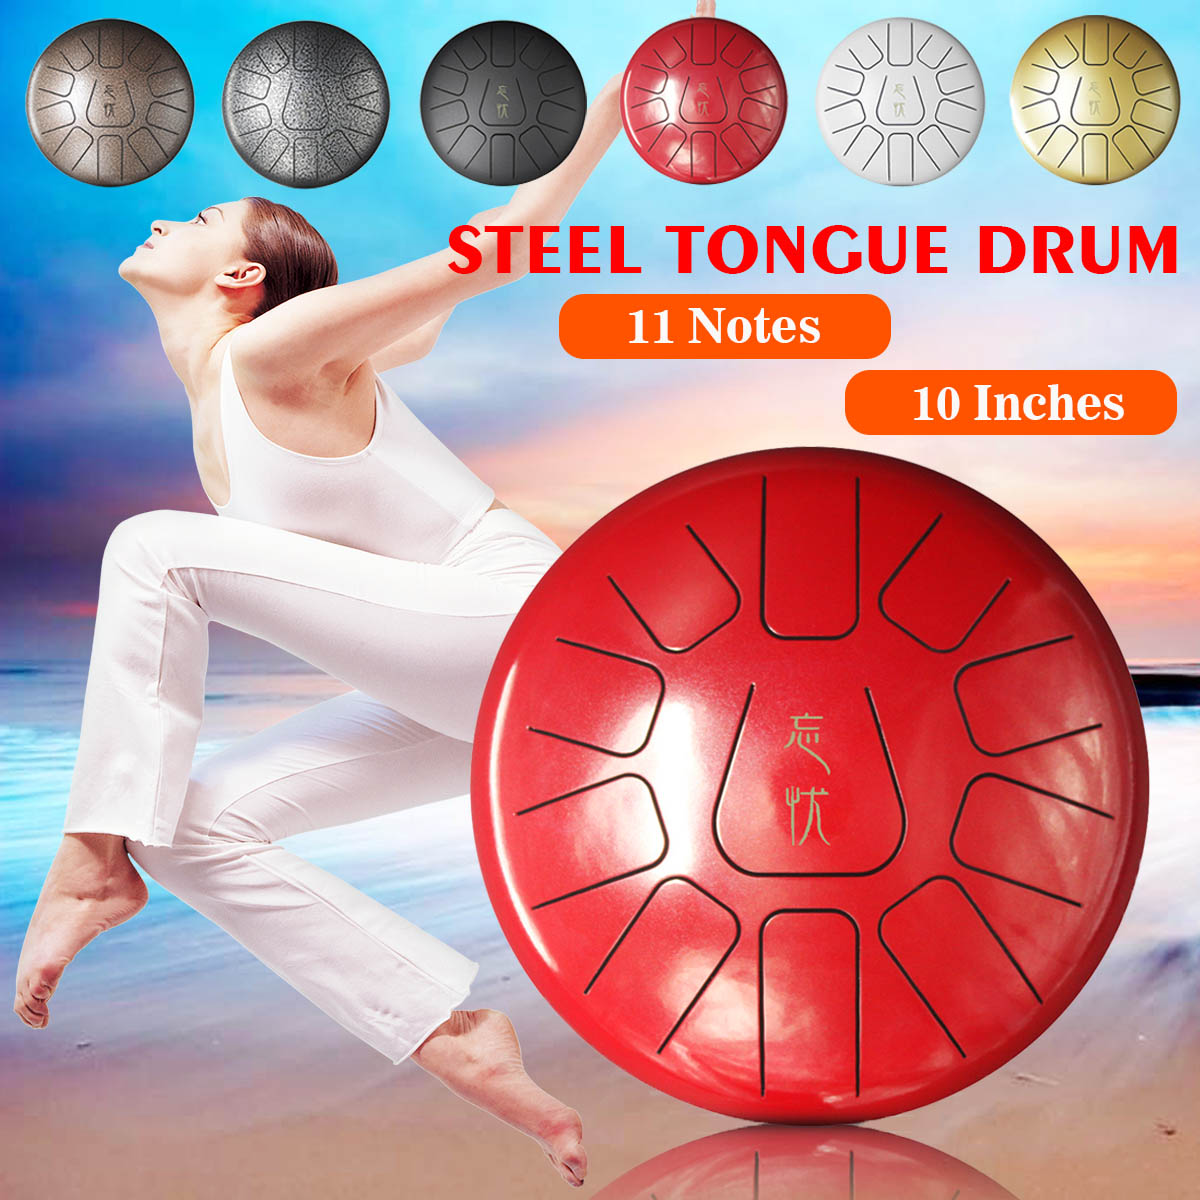 10 Inch Percussion Drum Steel Tongue Drum Hand Pan Drum with Drum Mallets Carry Bags Note Sticks Percussion Instrument